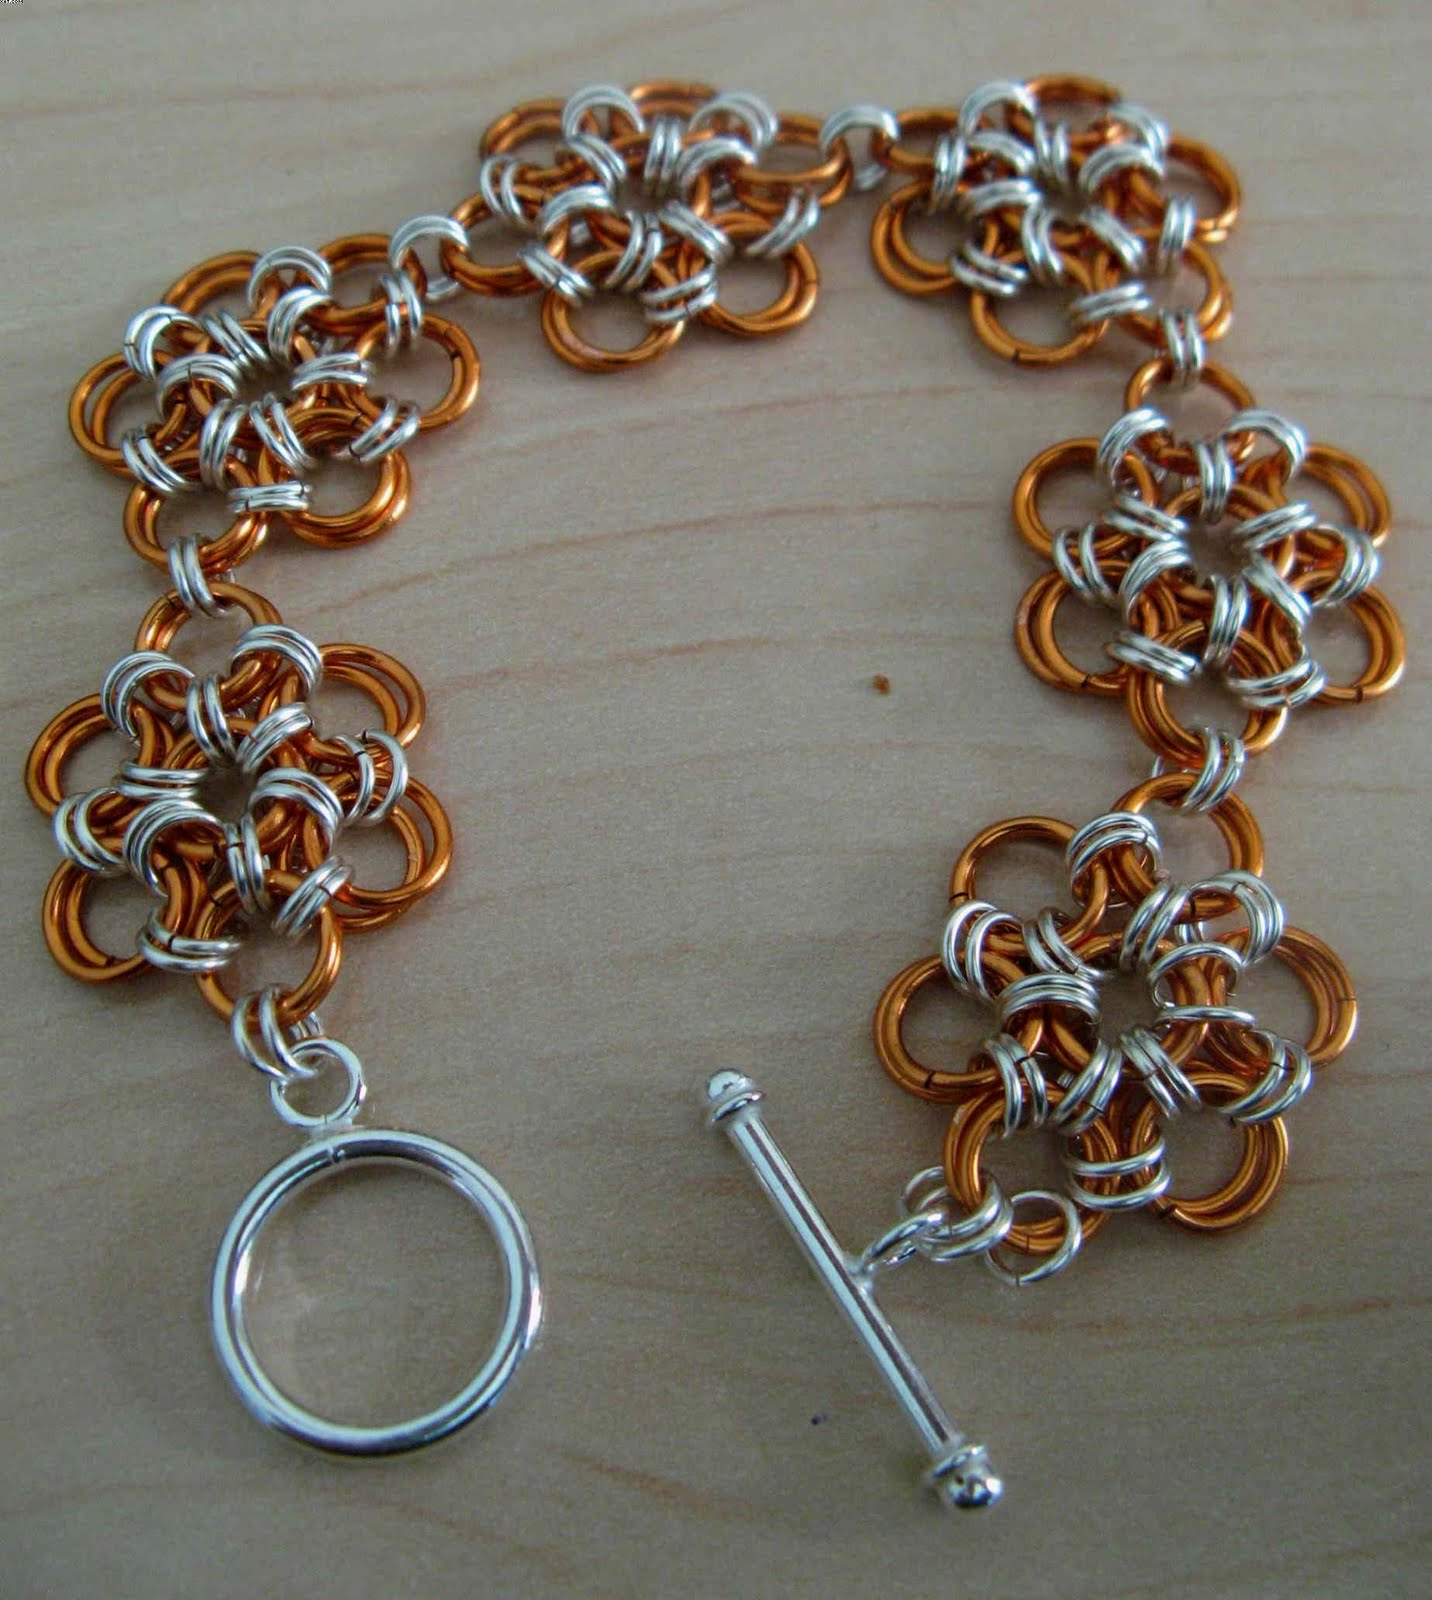 Scale+maille+bracelet